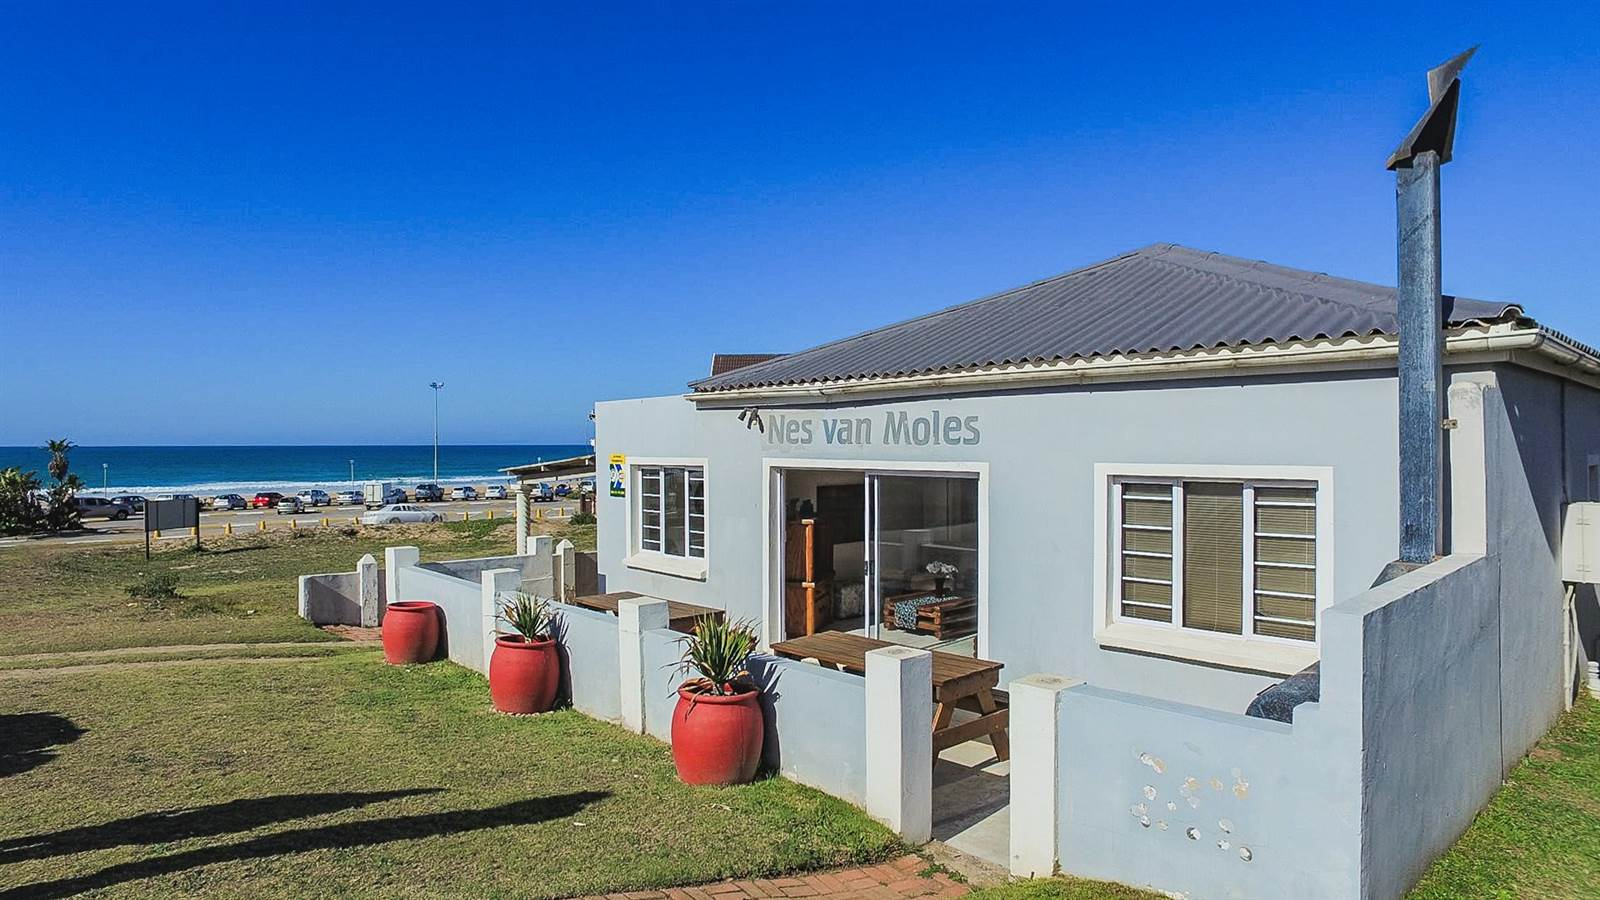 8 bedroom house for sale in jeffreys bay t616106 for 8 bedroom house for sale